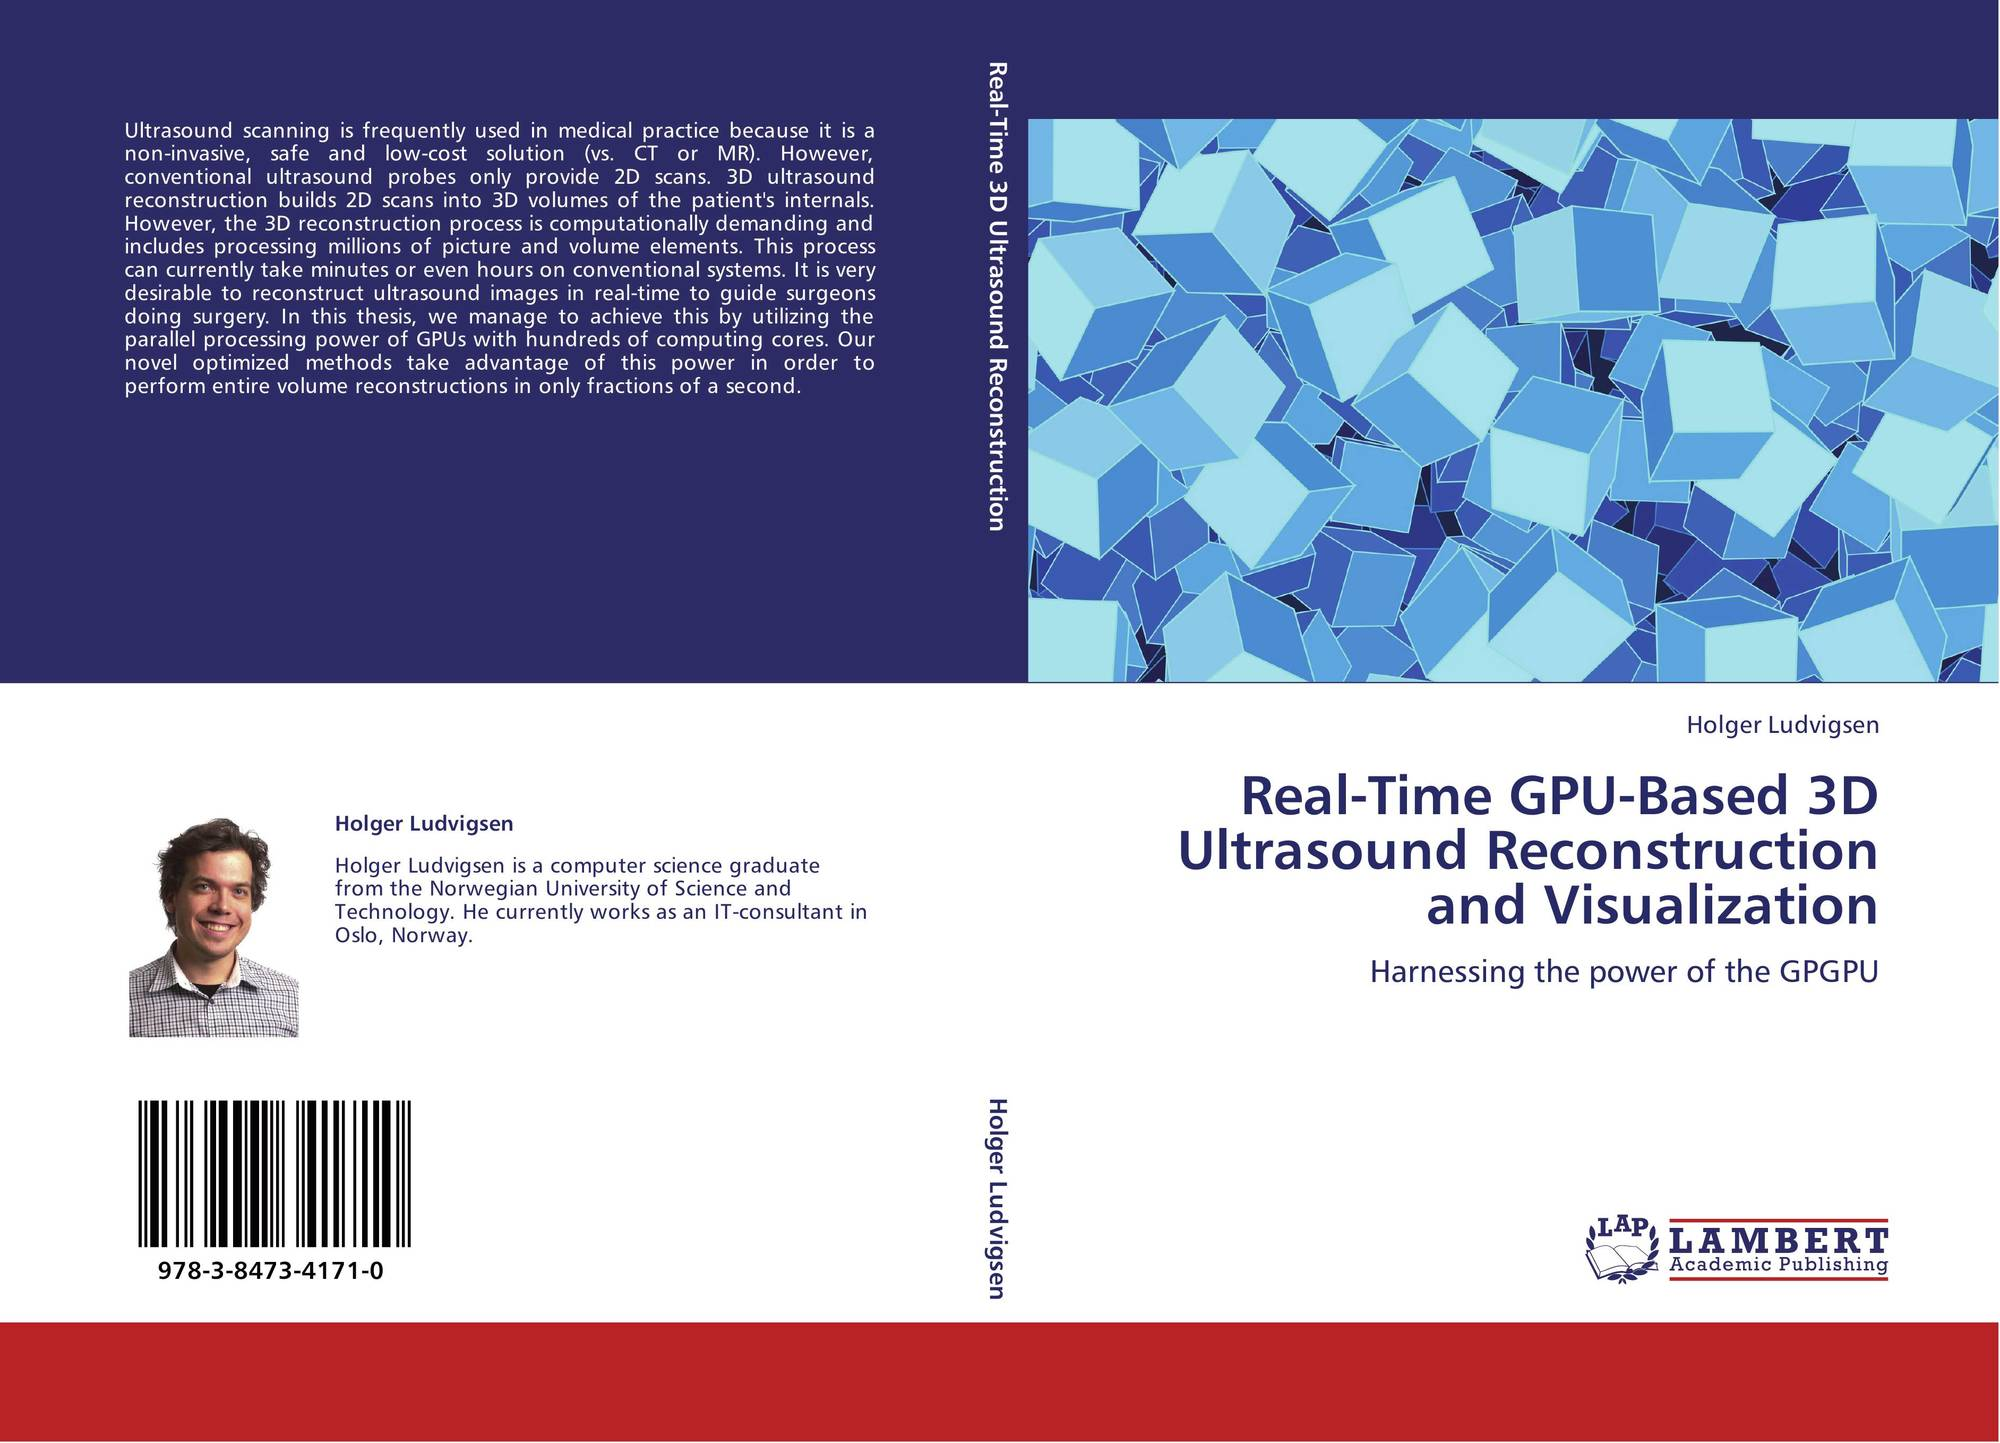 Real-Time GPU-Based 3D Ultrasound Reconstruction and Visualization